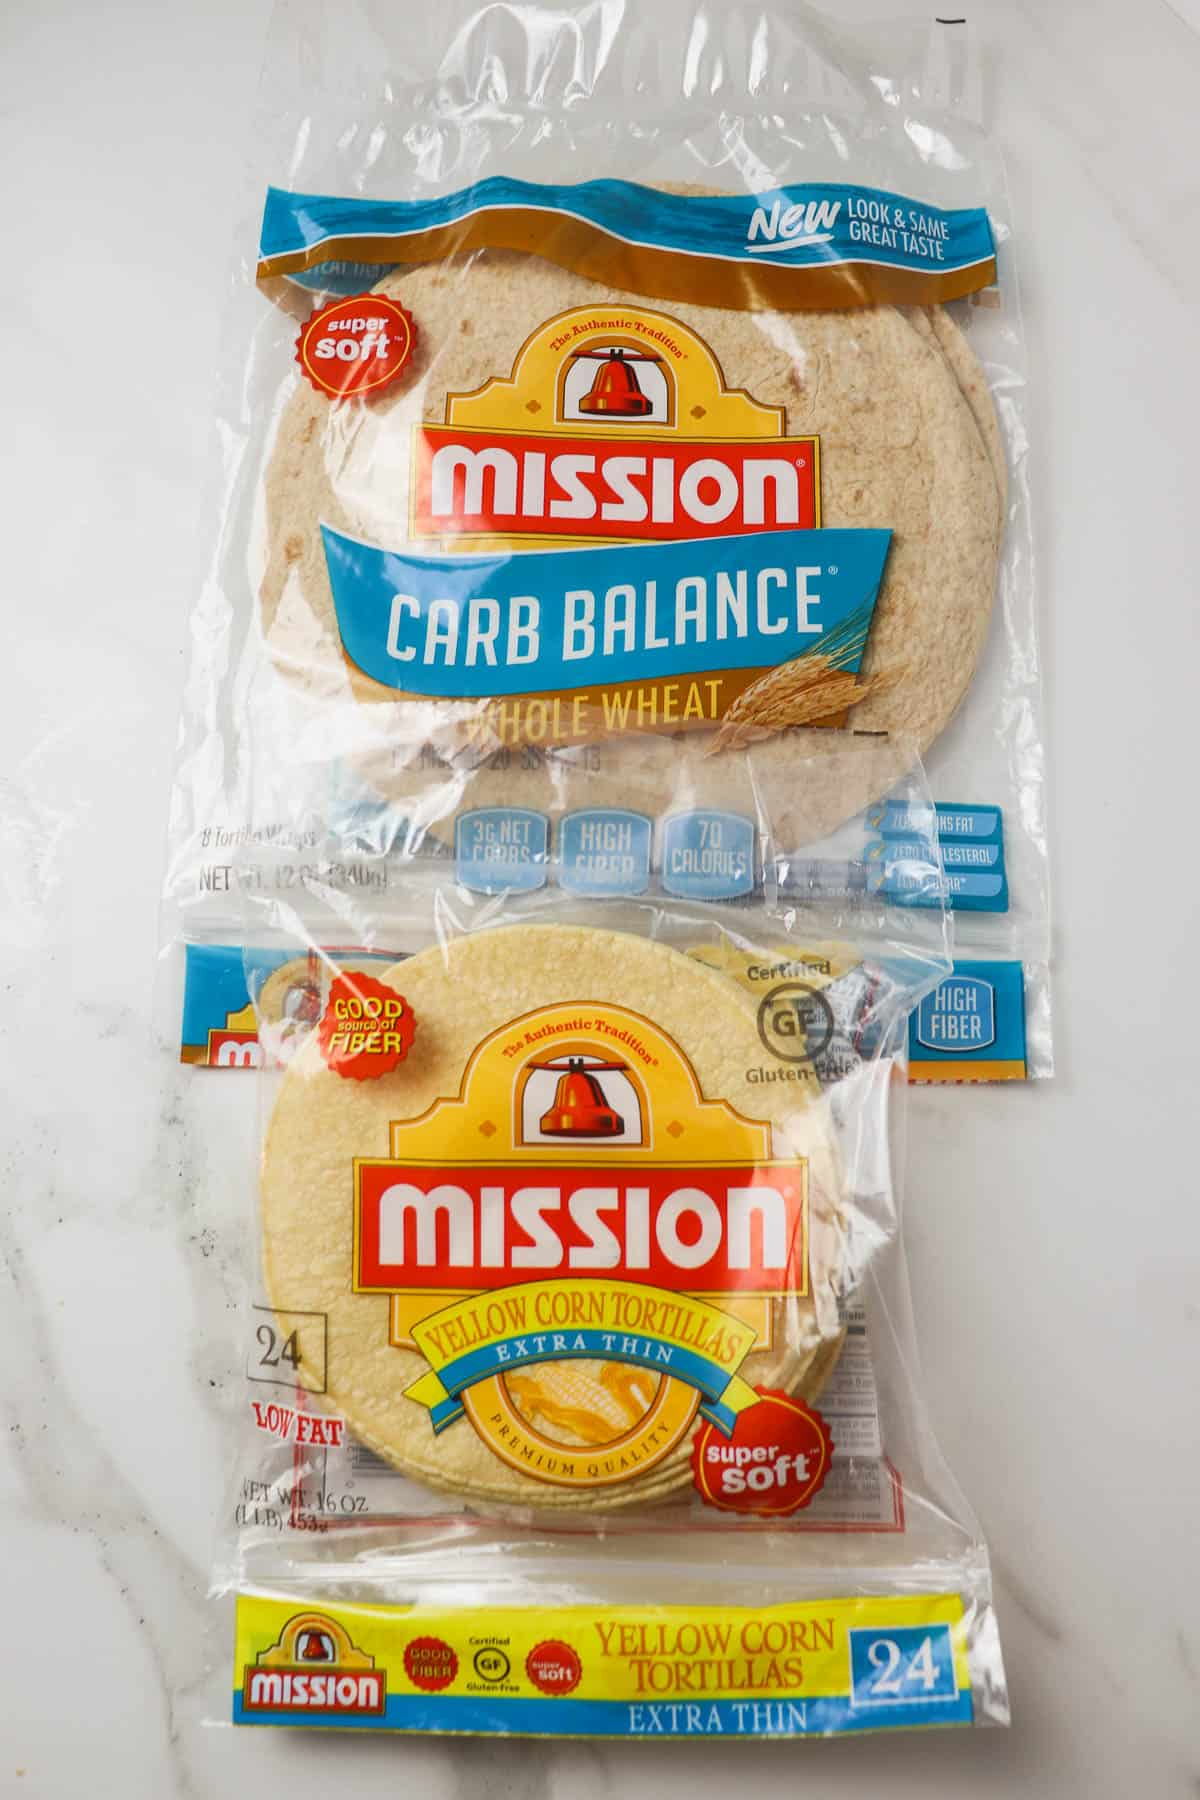 corn tortillas and whole wheat low carb tortillas in the package